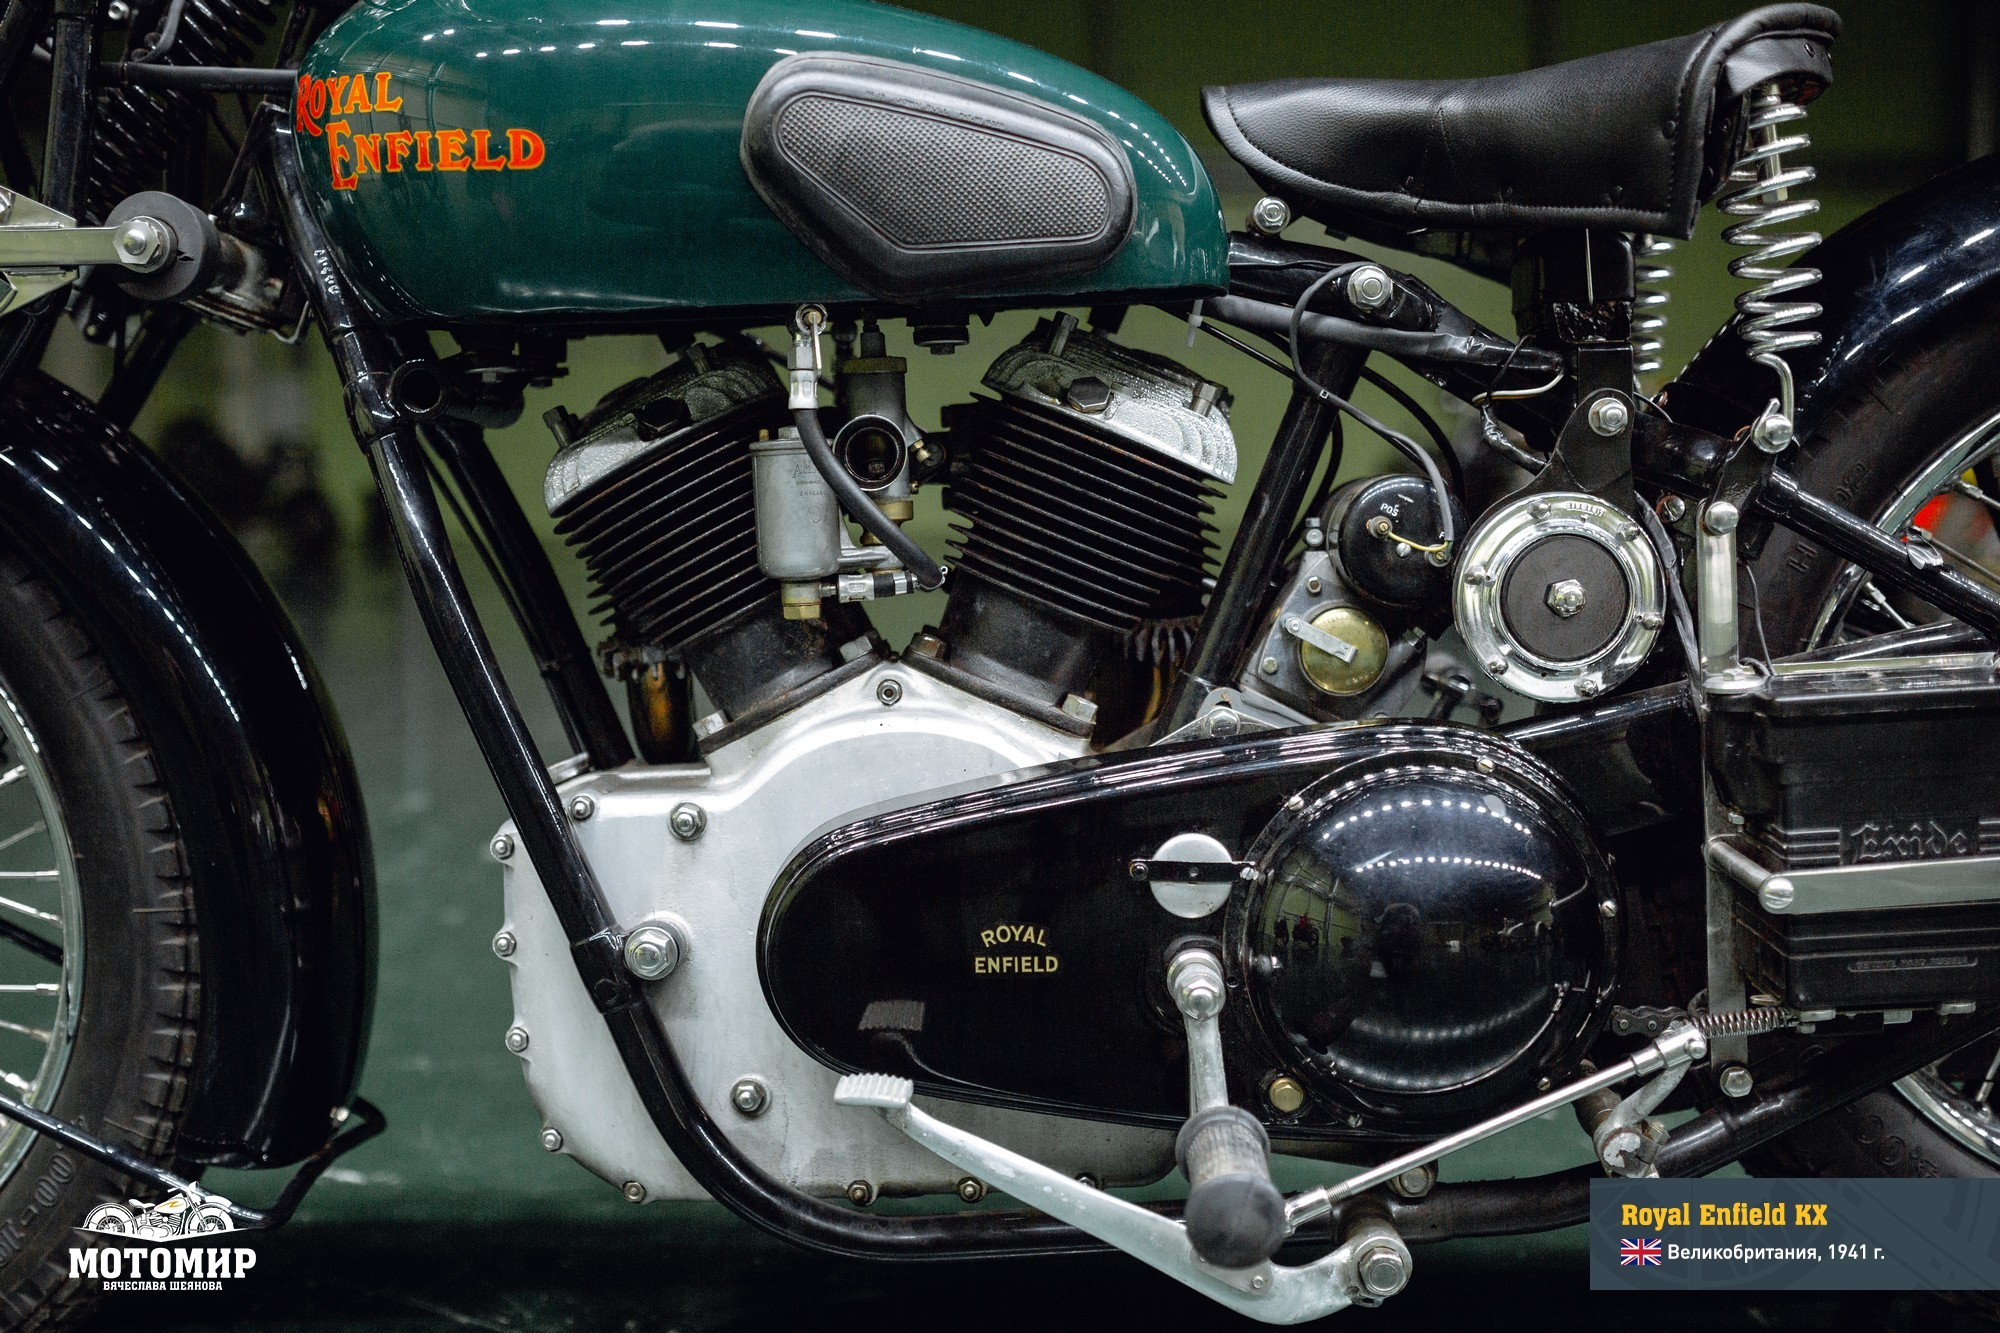 royal-enfield-kx-201601-web-11